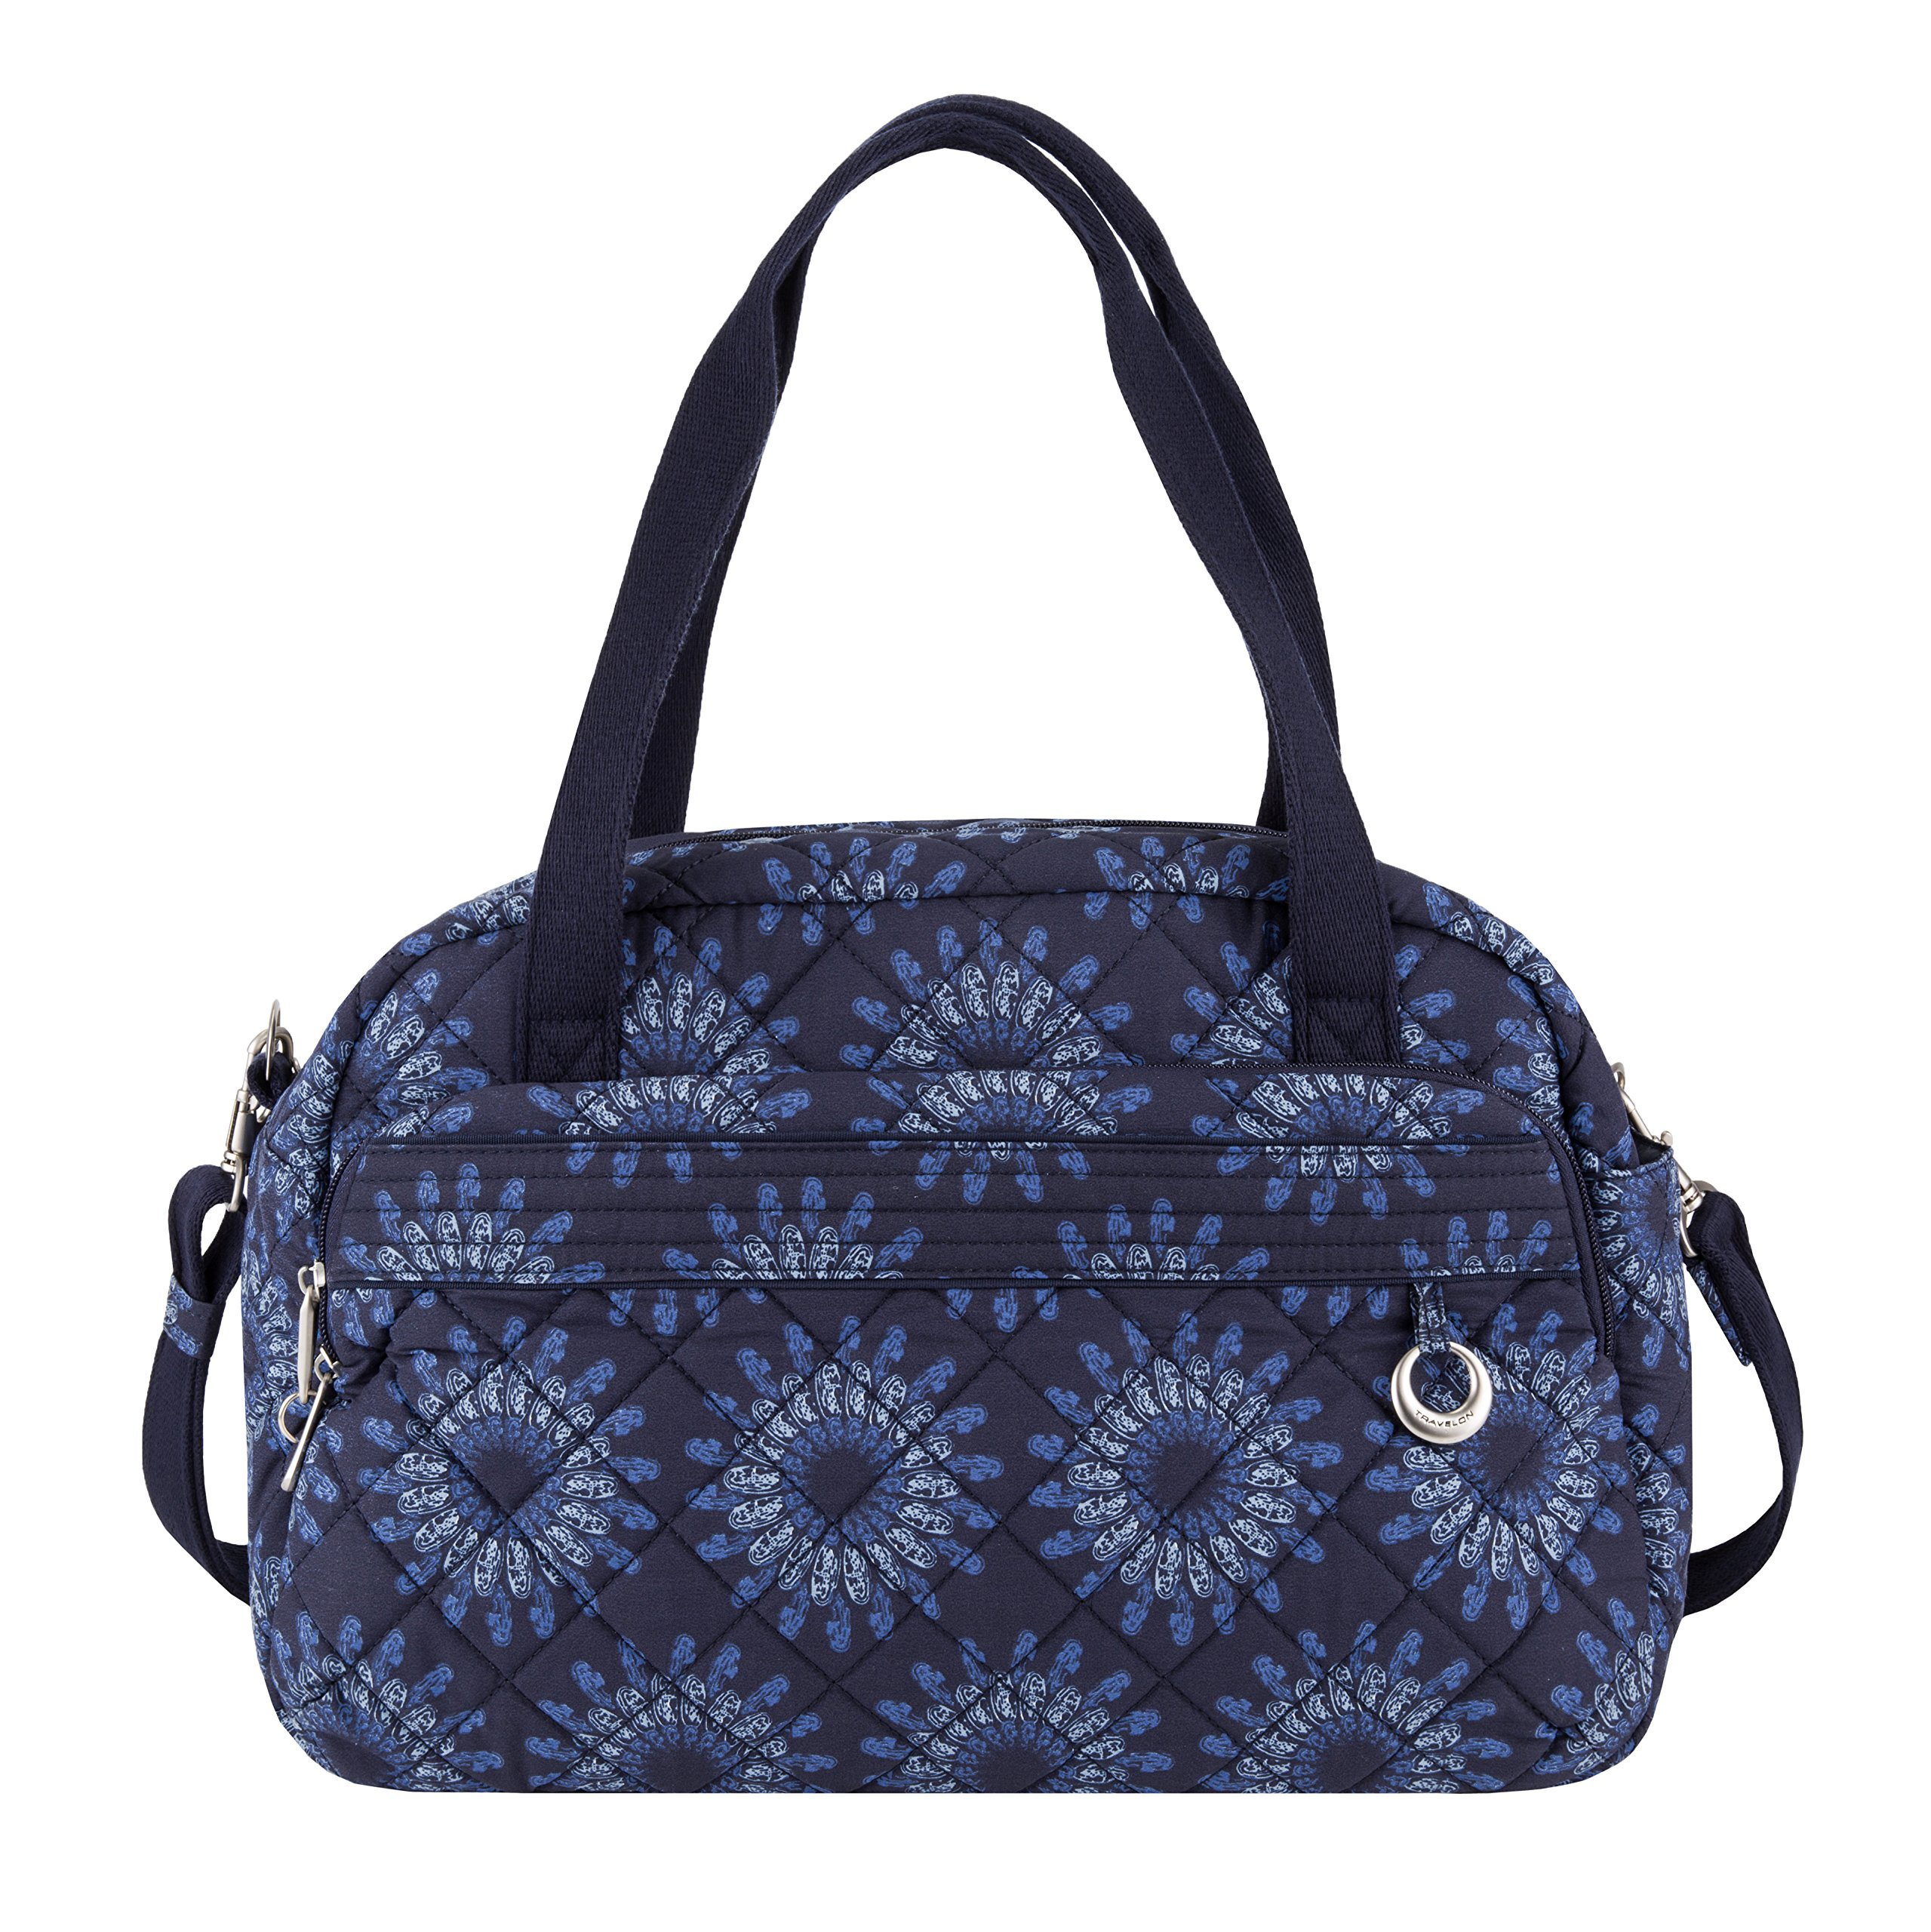 Travelon Women's Anti-theft Boho Weekender Bag, Geo Sunflower